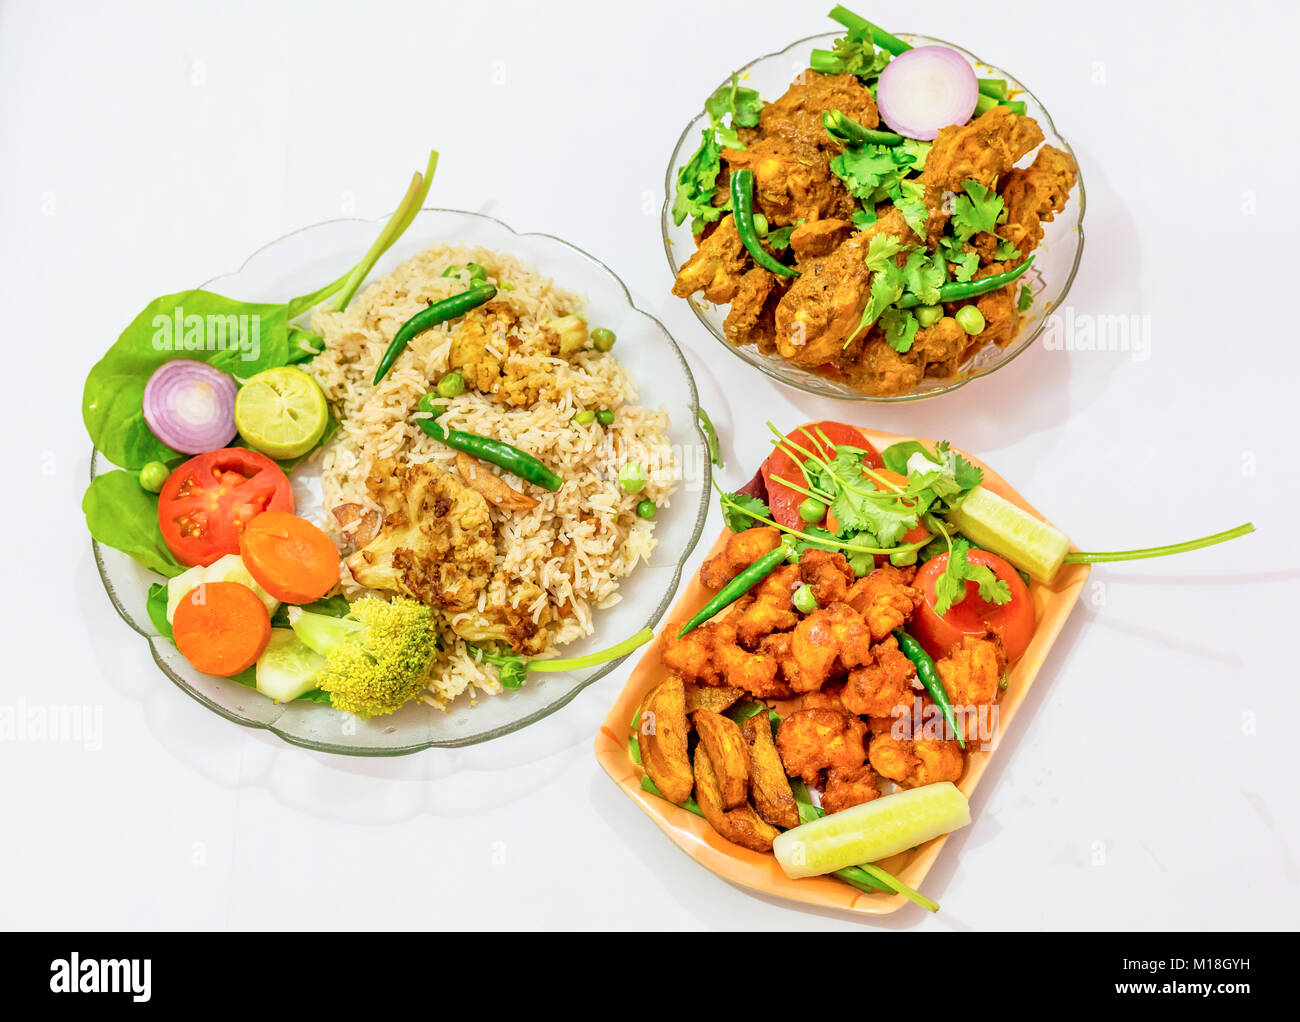 Indian cuisine dishes veg fried rice and spicy chicken kosha isolated on white background. A popular Bengali food. - Stock Image